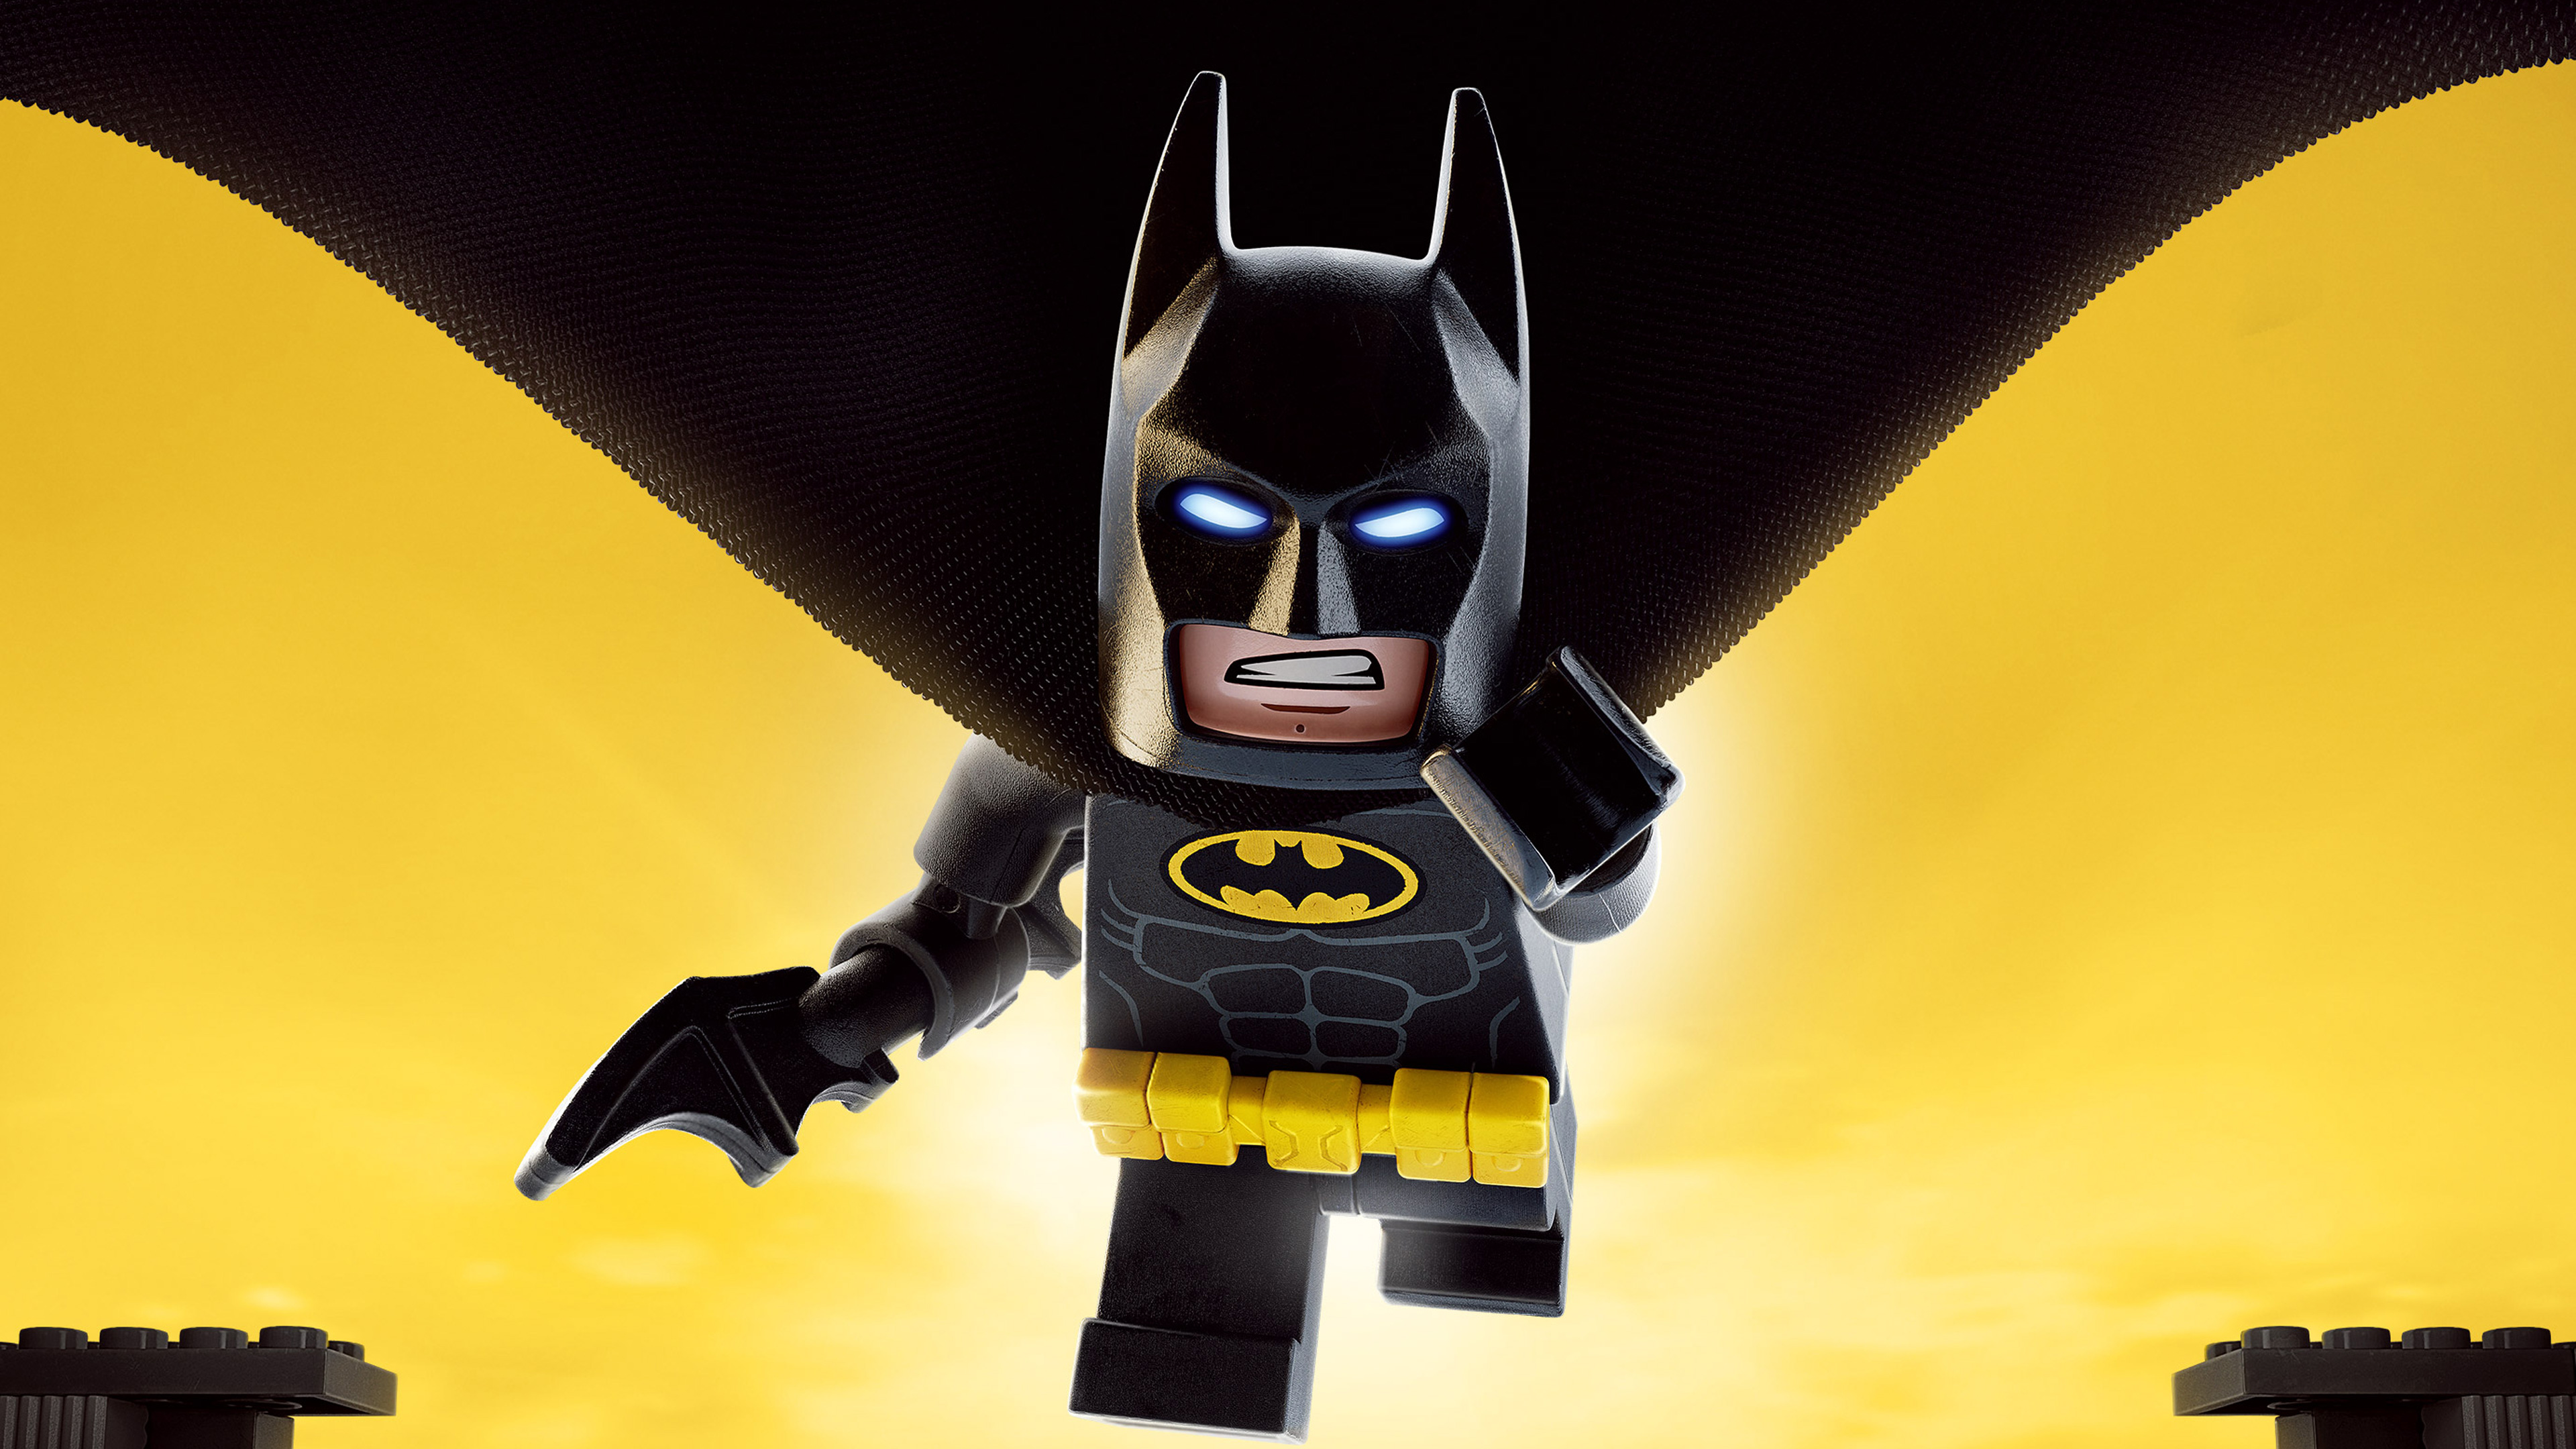 the lego batman 2017 1536399802 - The Lego Batman 2017 - the lego batman movie wallpapers, poster wallpapers, movies wallpapers, batman wallpapers, animated movies wallpapers, 2017 movies wallpapers